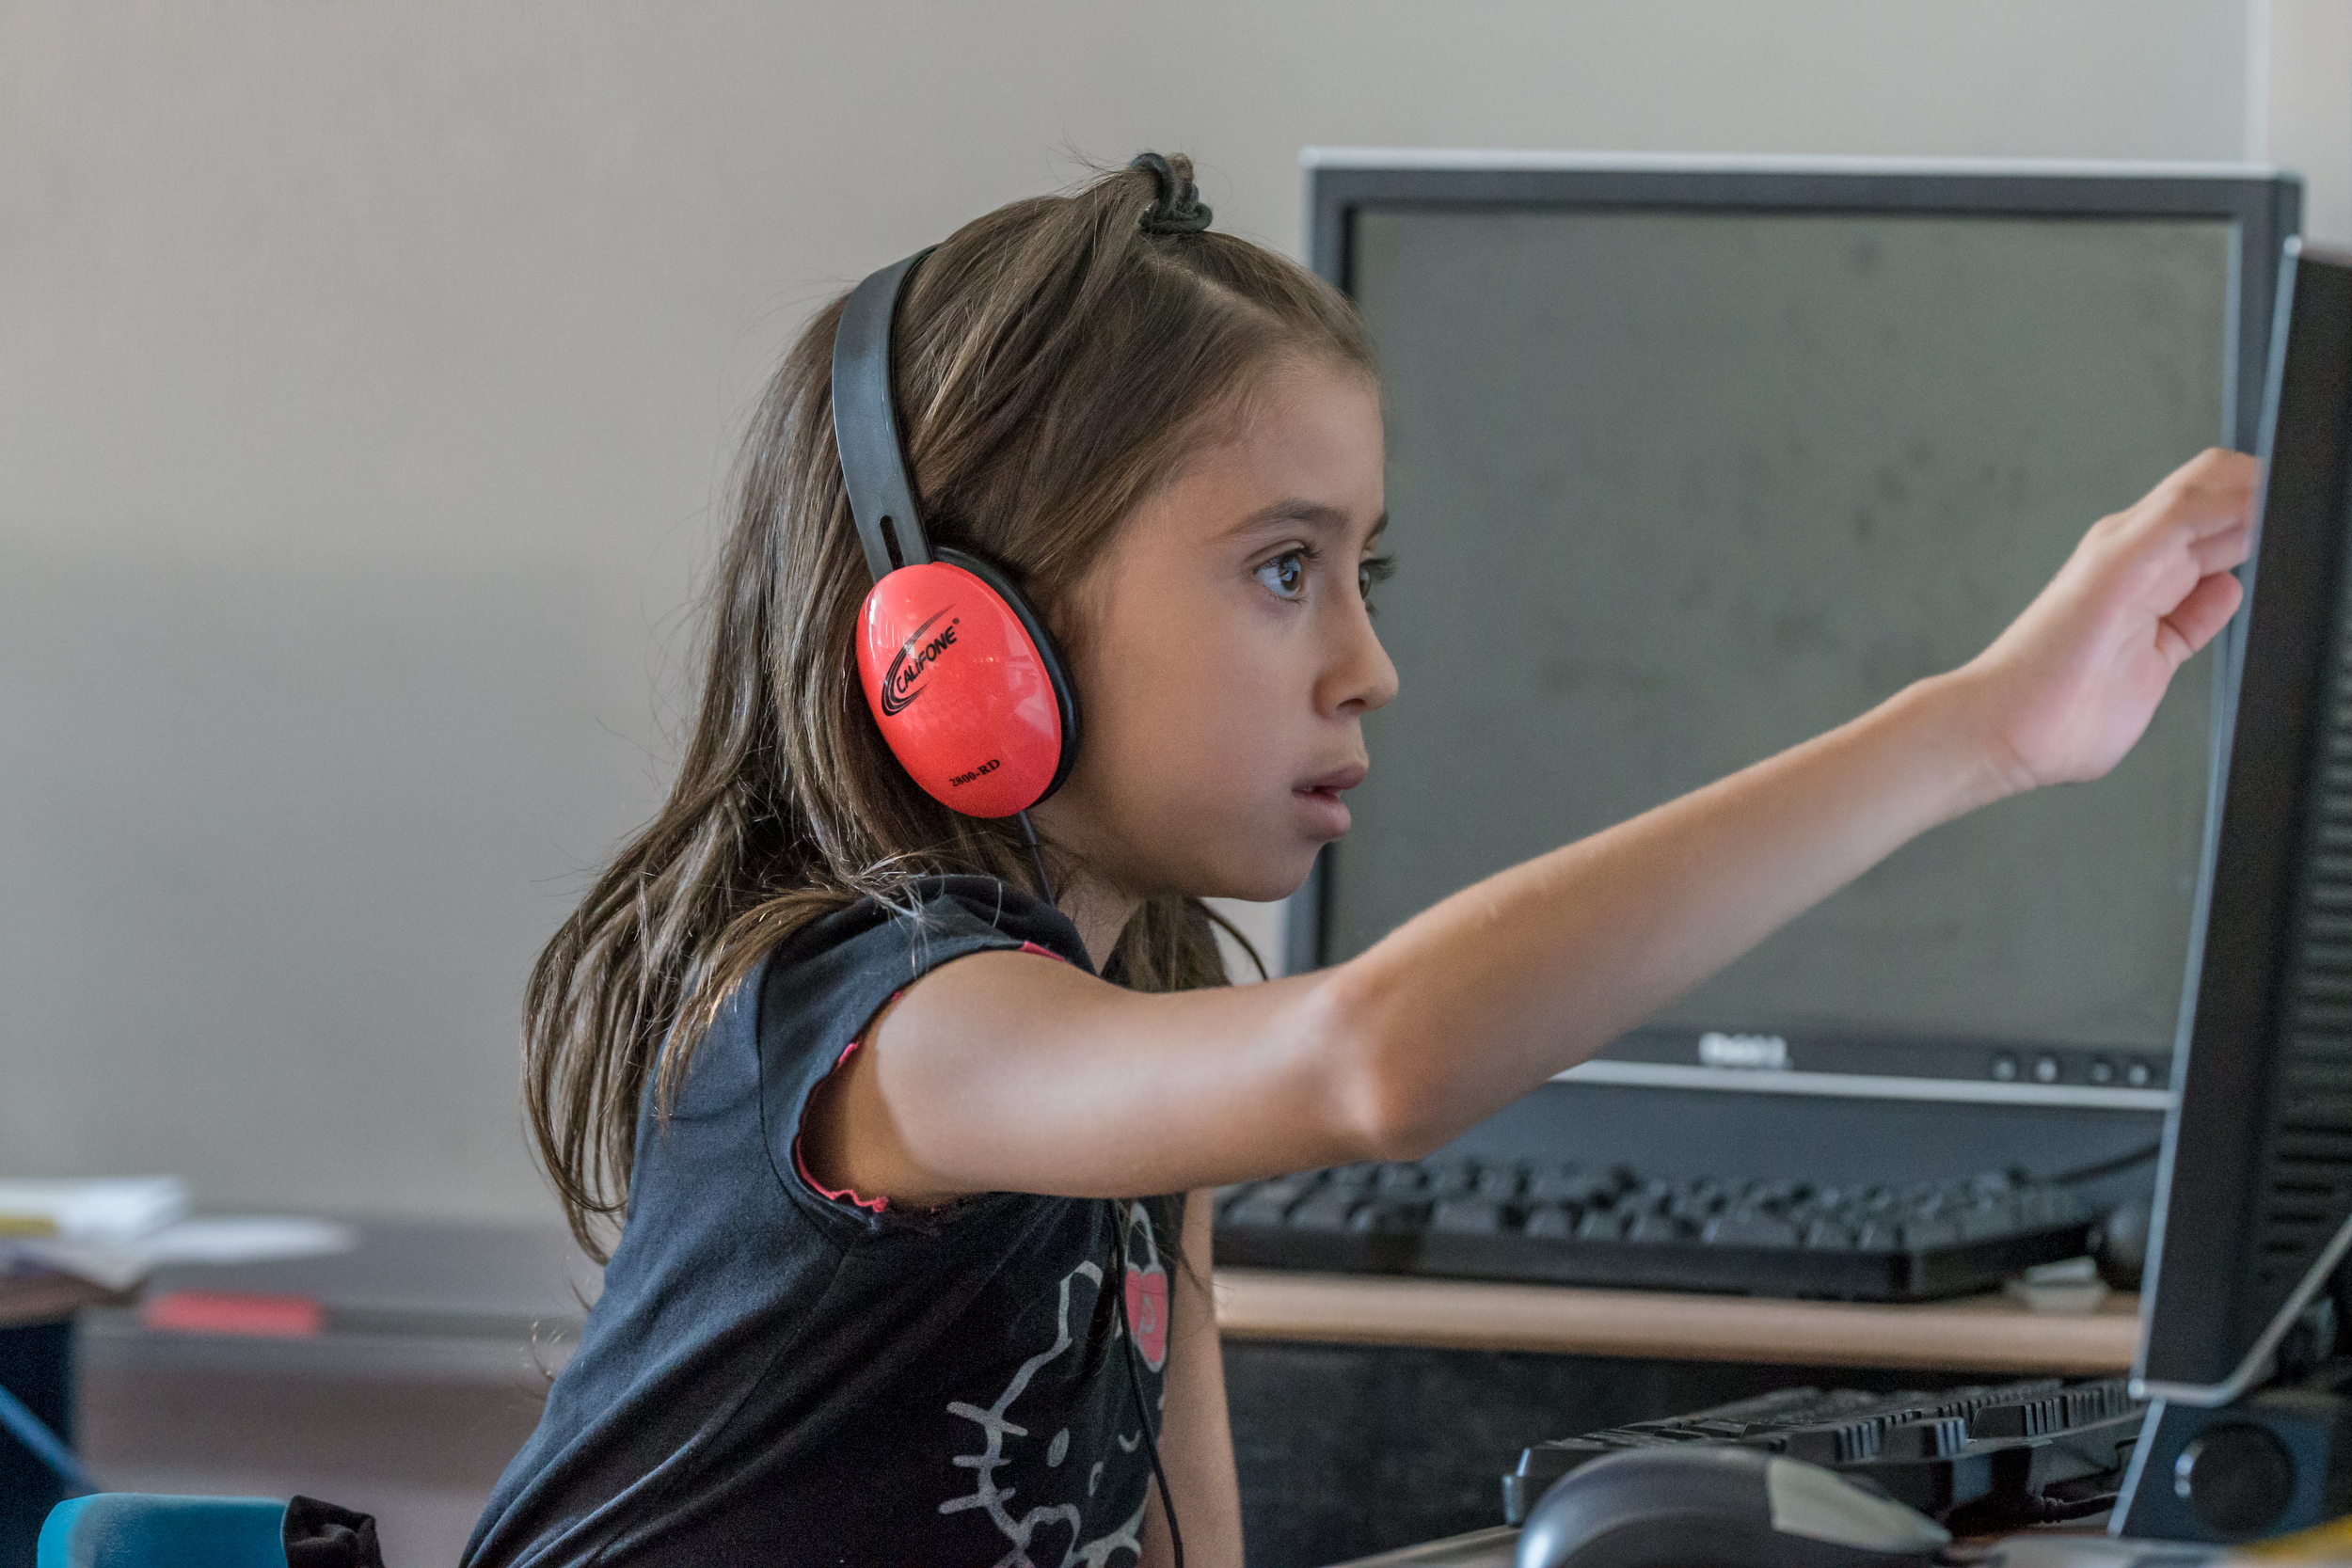 Child with headphones interacting with computer